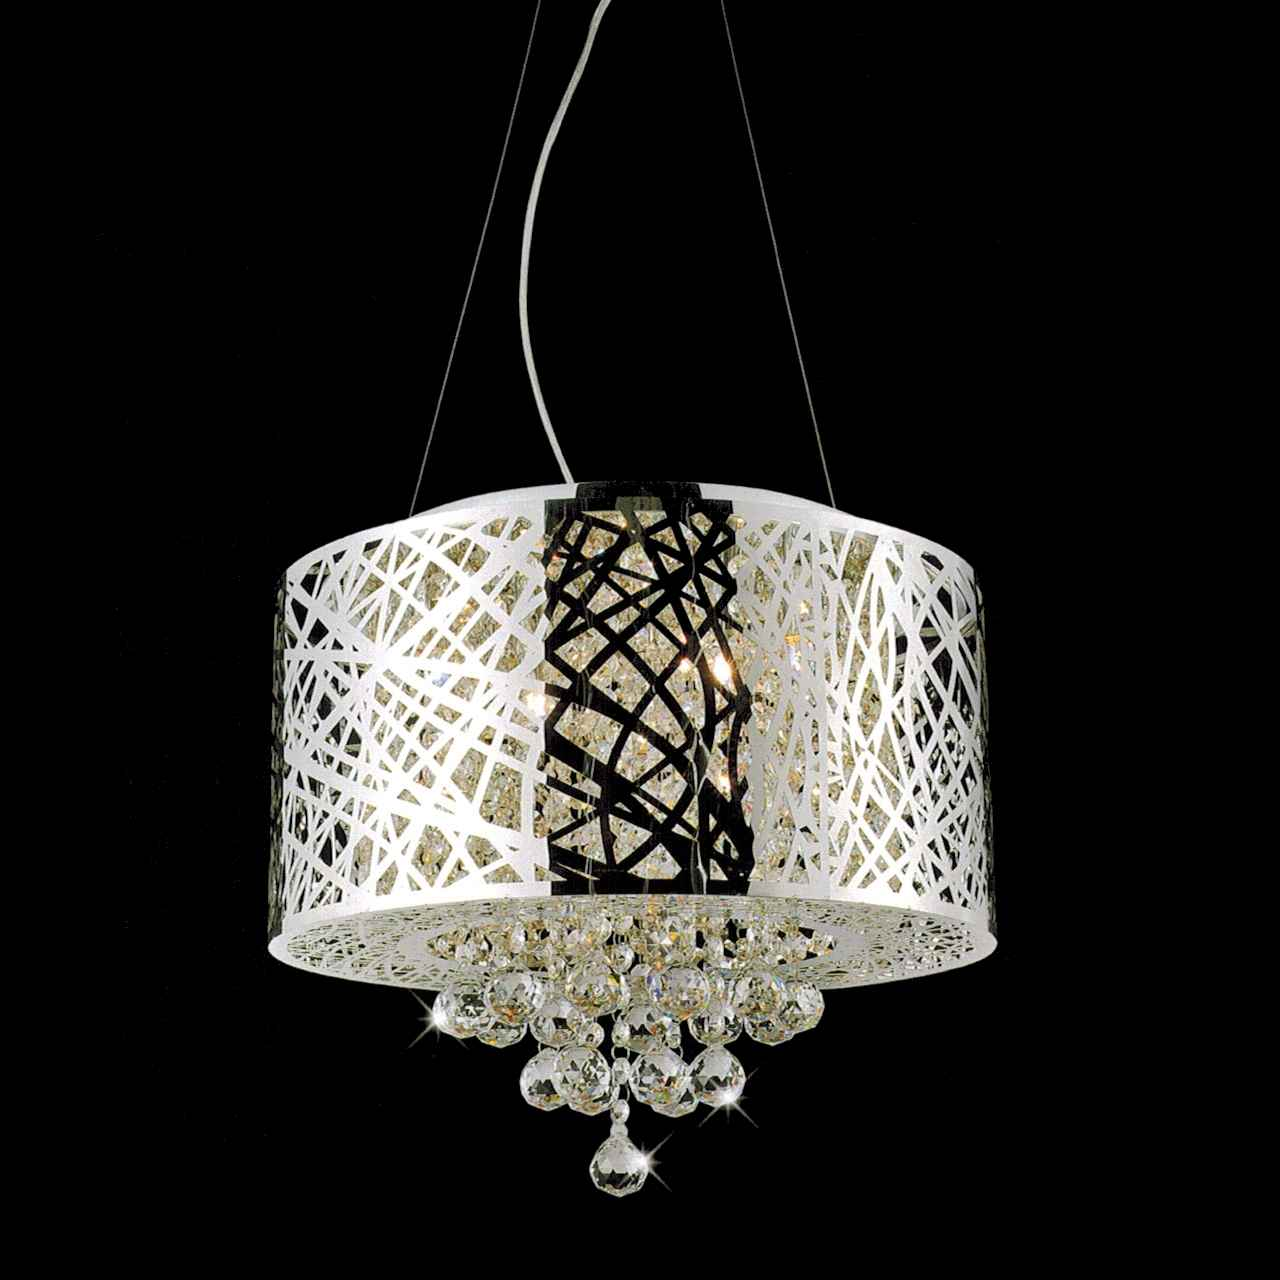 Brizzo lighting stores 16 web modern laser cut drum shade crystal picture of 16 web modern laser cut drum shade crystal round pendant chandelier stainless steel mozeypictures Gallery